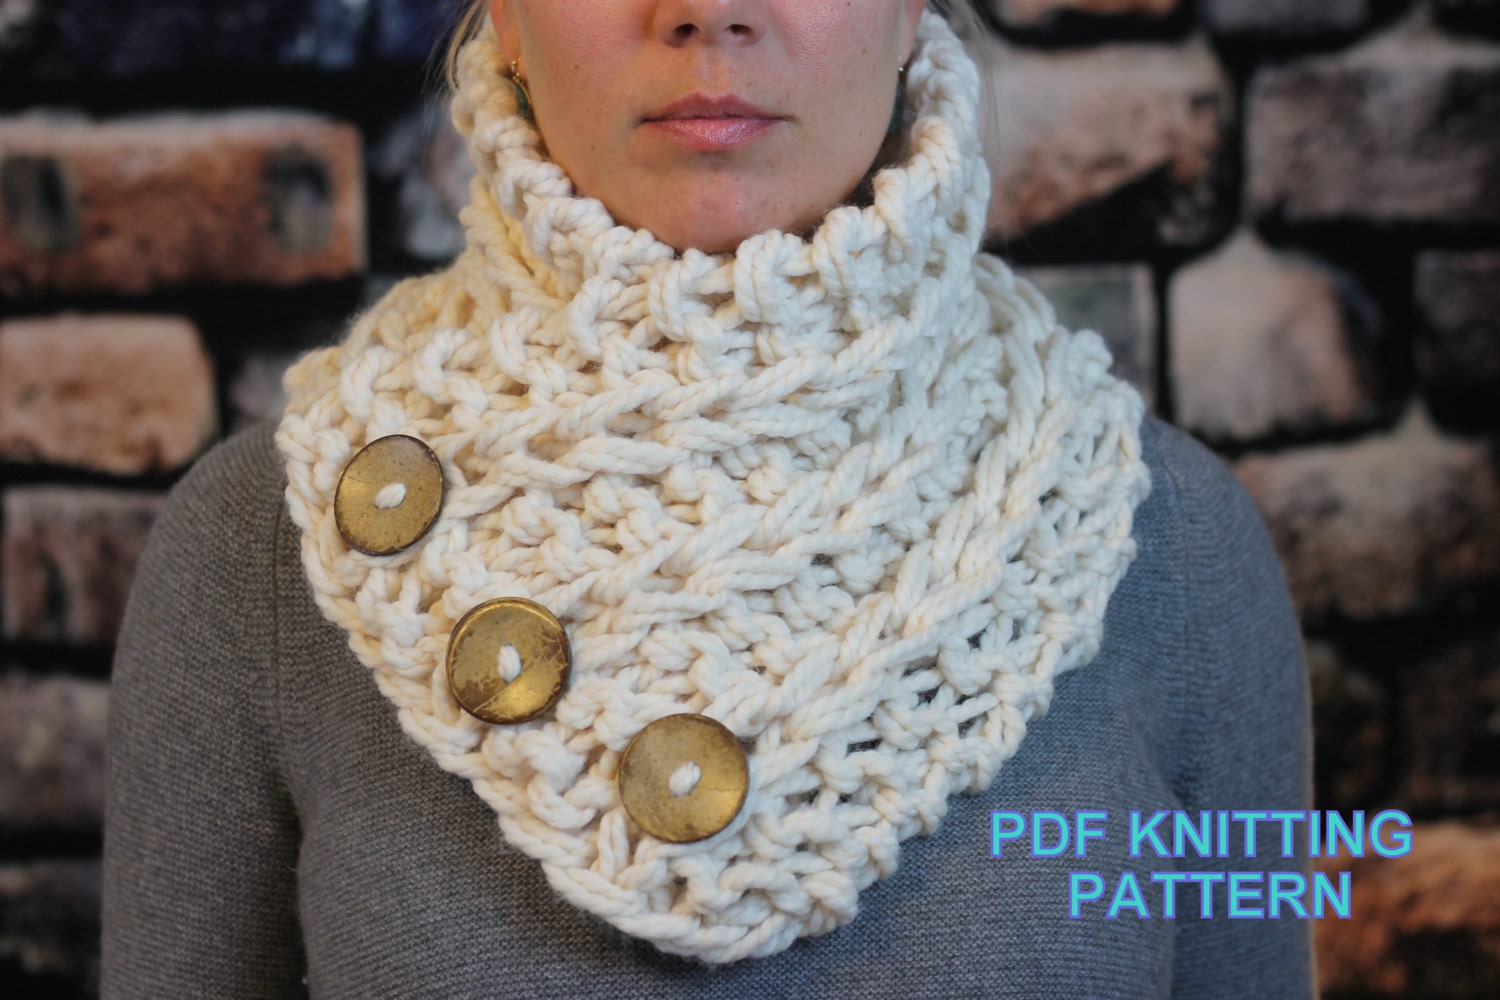 KNITTING PATTERN Beginner / 3 Button Scarf Cowl Shawl in